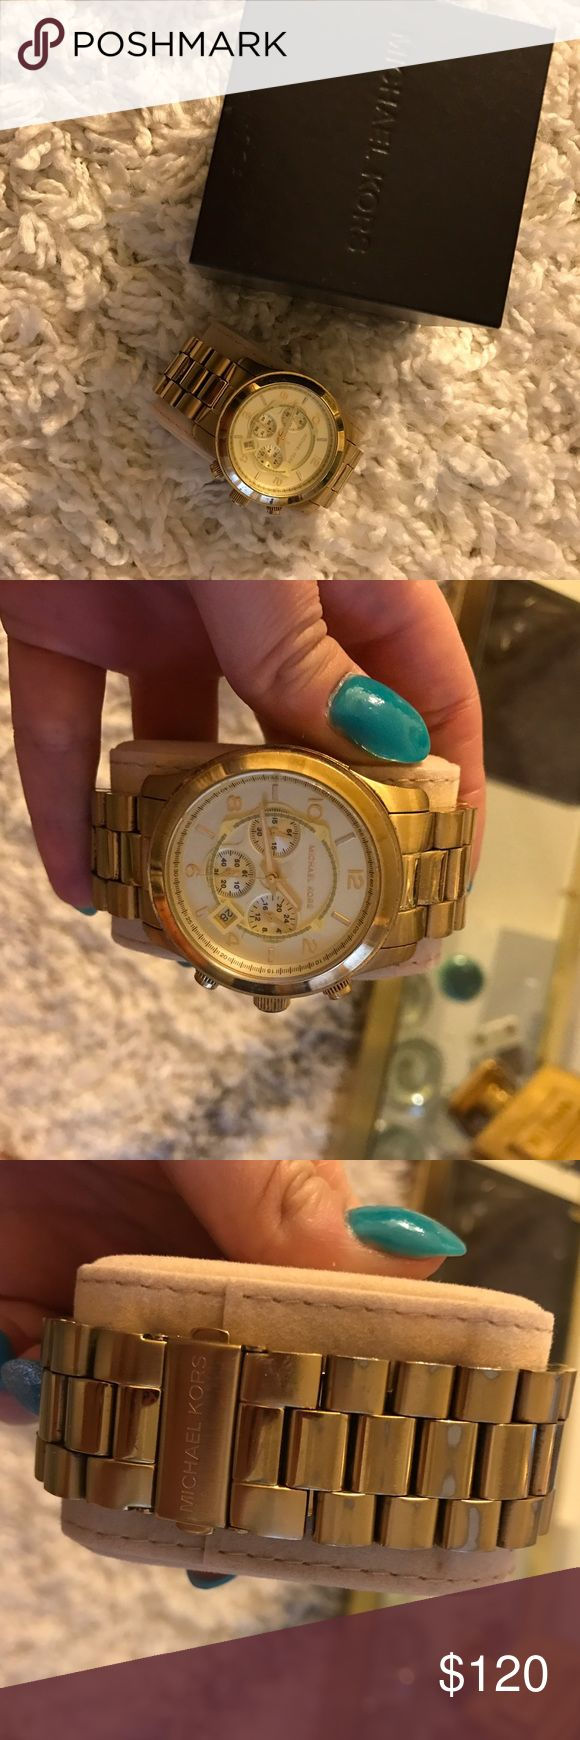 Michael kors gold oversized watch Good oversized watch from Michael kors. There is some wearing on the band, which would lay on the underside of the wrist. Comes with box and original links. Michael Kors Accessories Watches